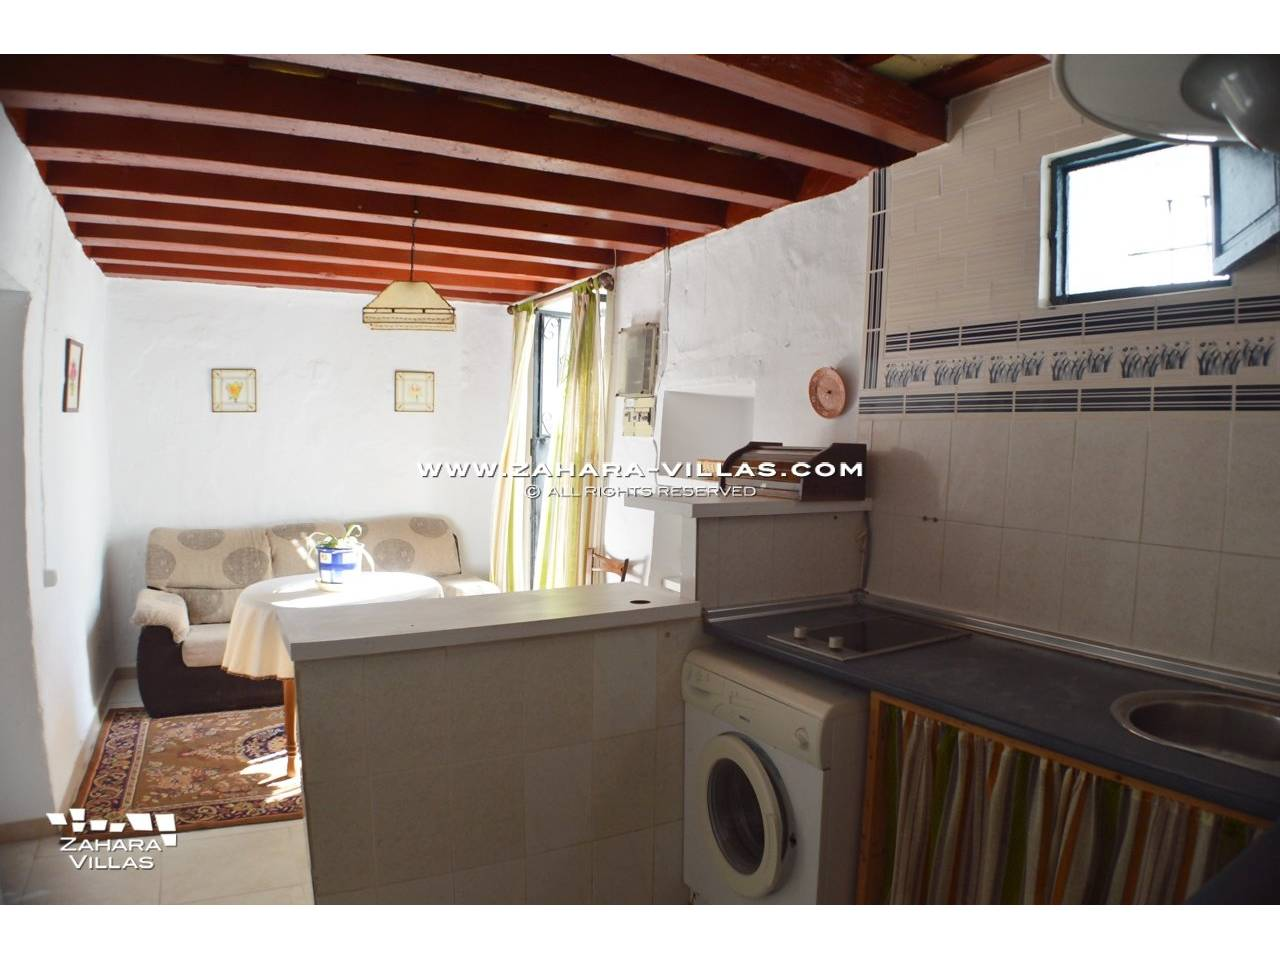 "Imagen 15 de House a few meters from the famous""Plaza de los Pescaitos"" in old town of Vejer"